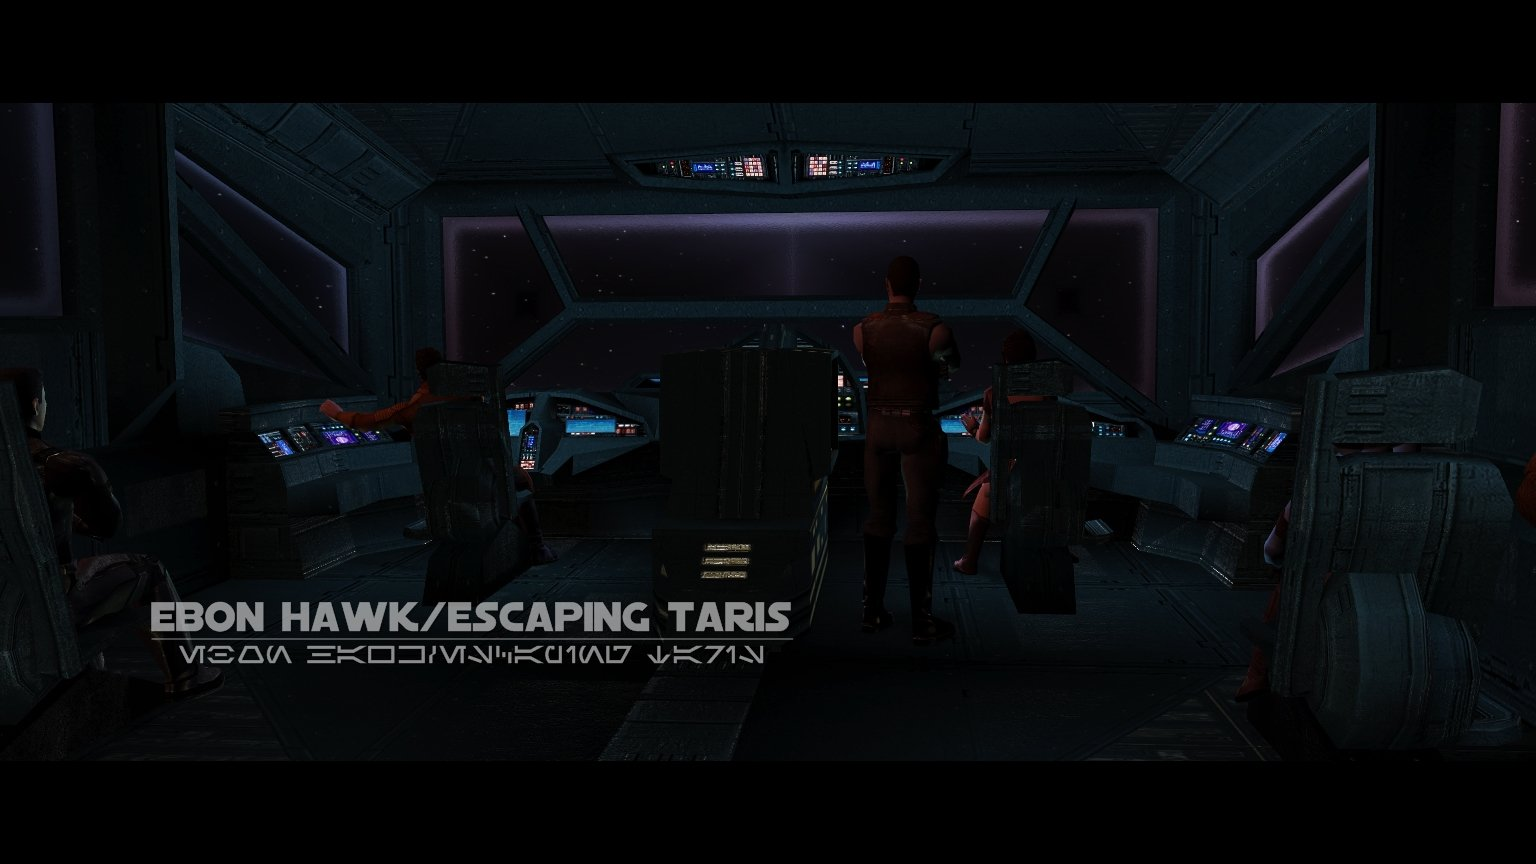 Ebon Hawk: Escaping Taris